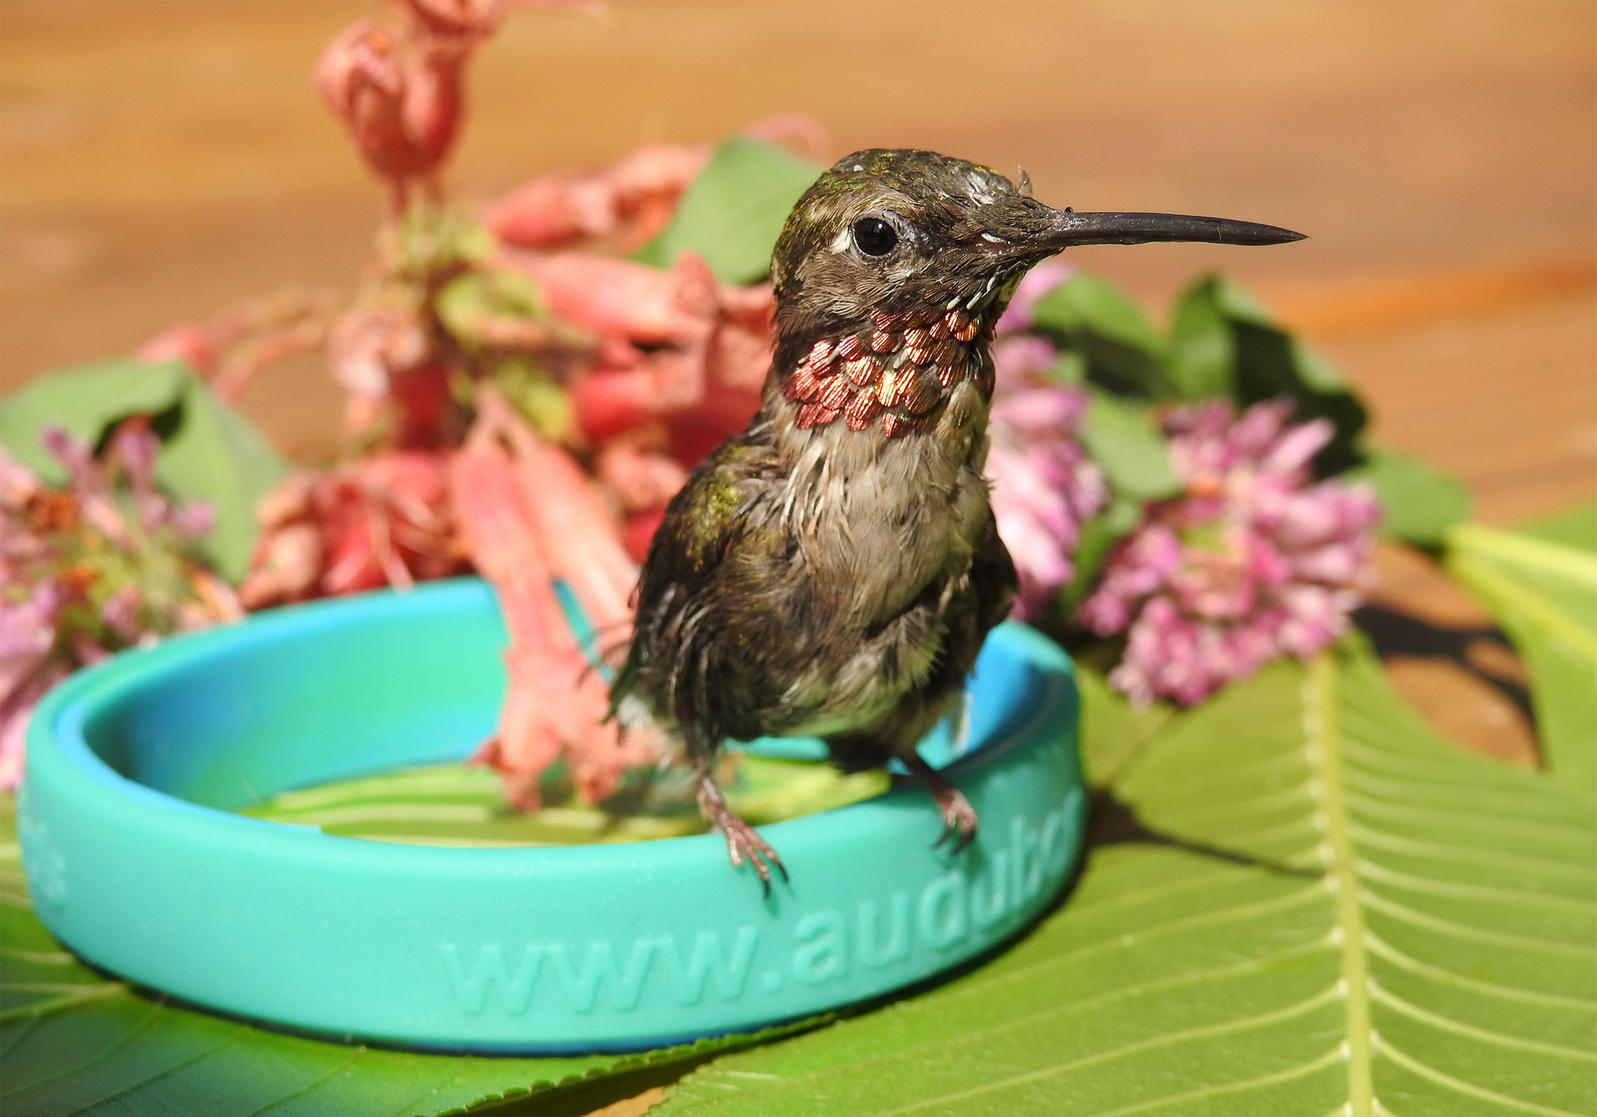 After suffering an irreparable broken wing, Shep the Ruby-throated Hummingbird has found a permanent home with Atlanta Audubon. Melanie Furr